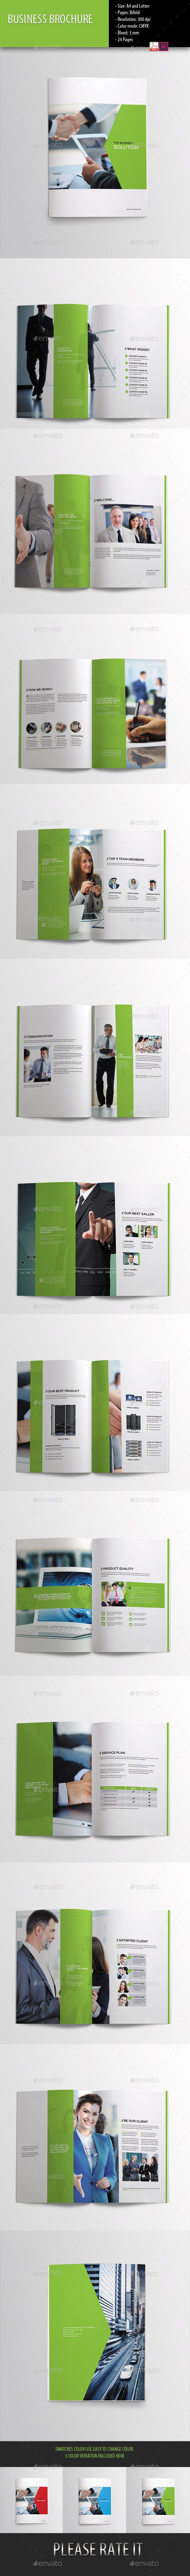 Business Brochure-Indesign Template - Corporate Brochures